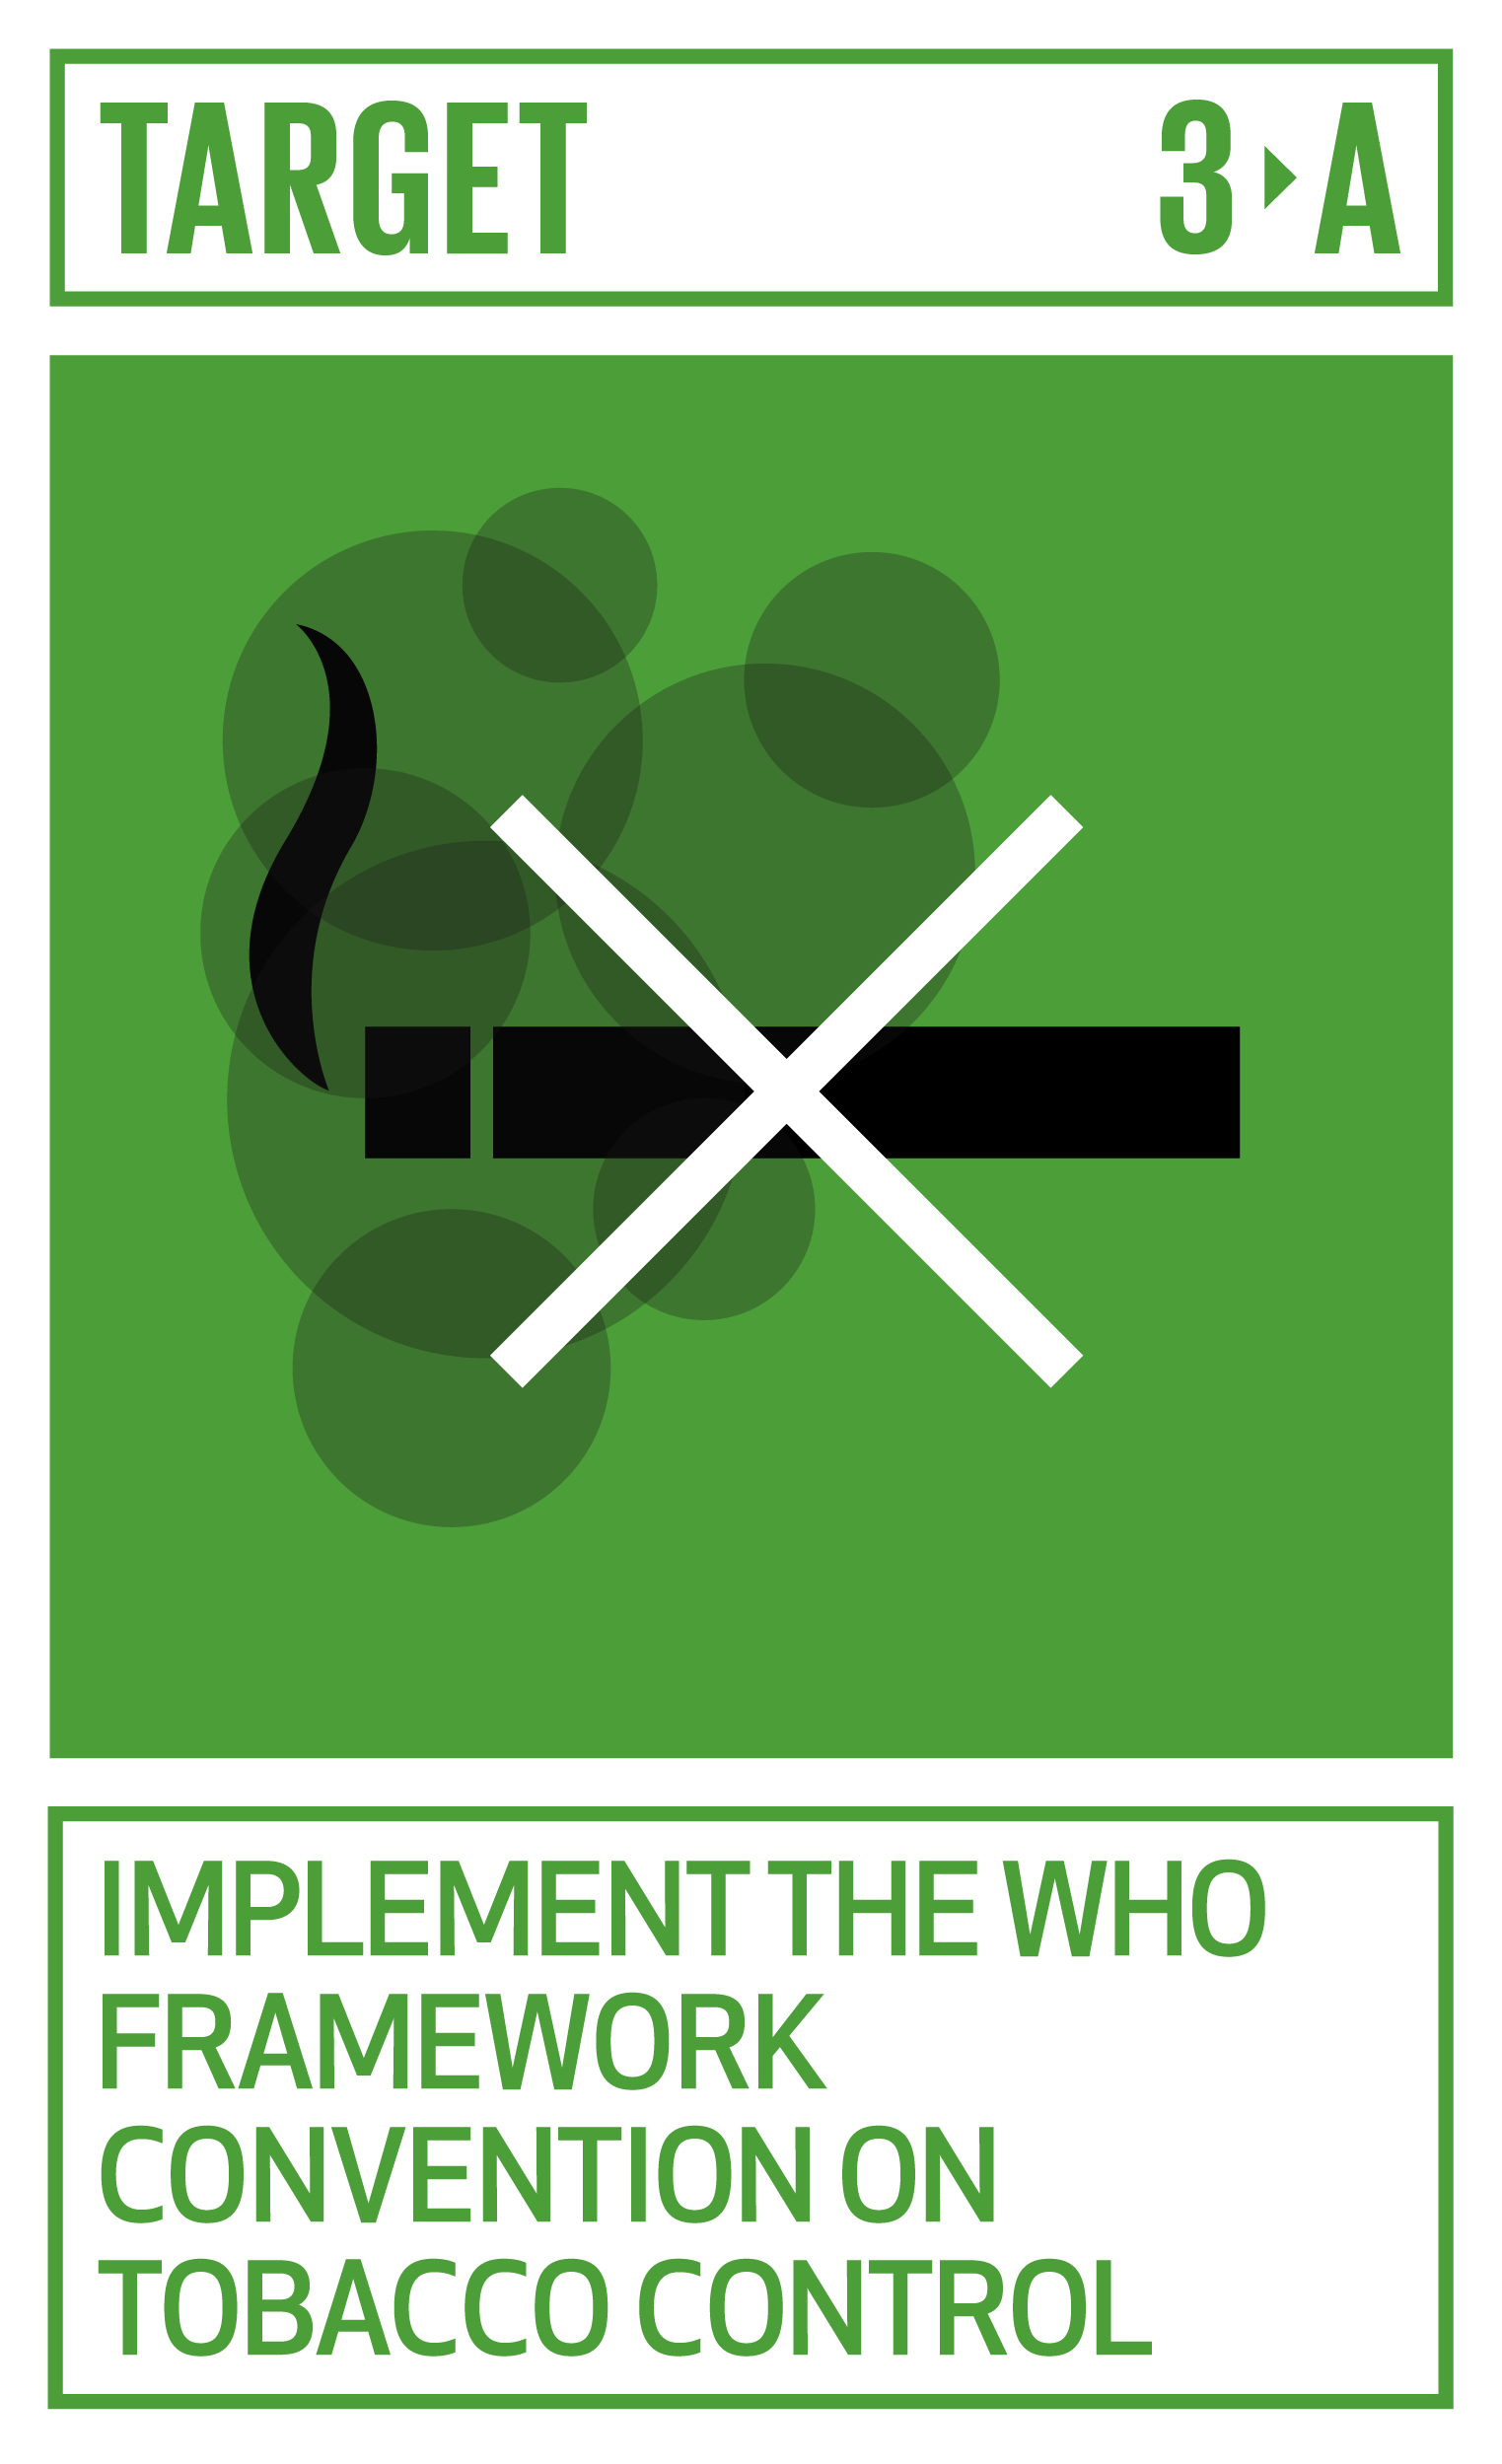 Strengthen the implementation of the World Health Organization Framework Convention on Tobacco Control in all countries, as appropriate.   INDICATOR    3.a.1  Age-standardized prevalence of current tobacco use among persons aged 15 years and older